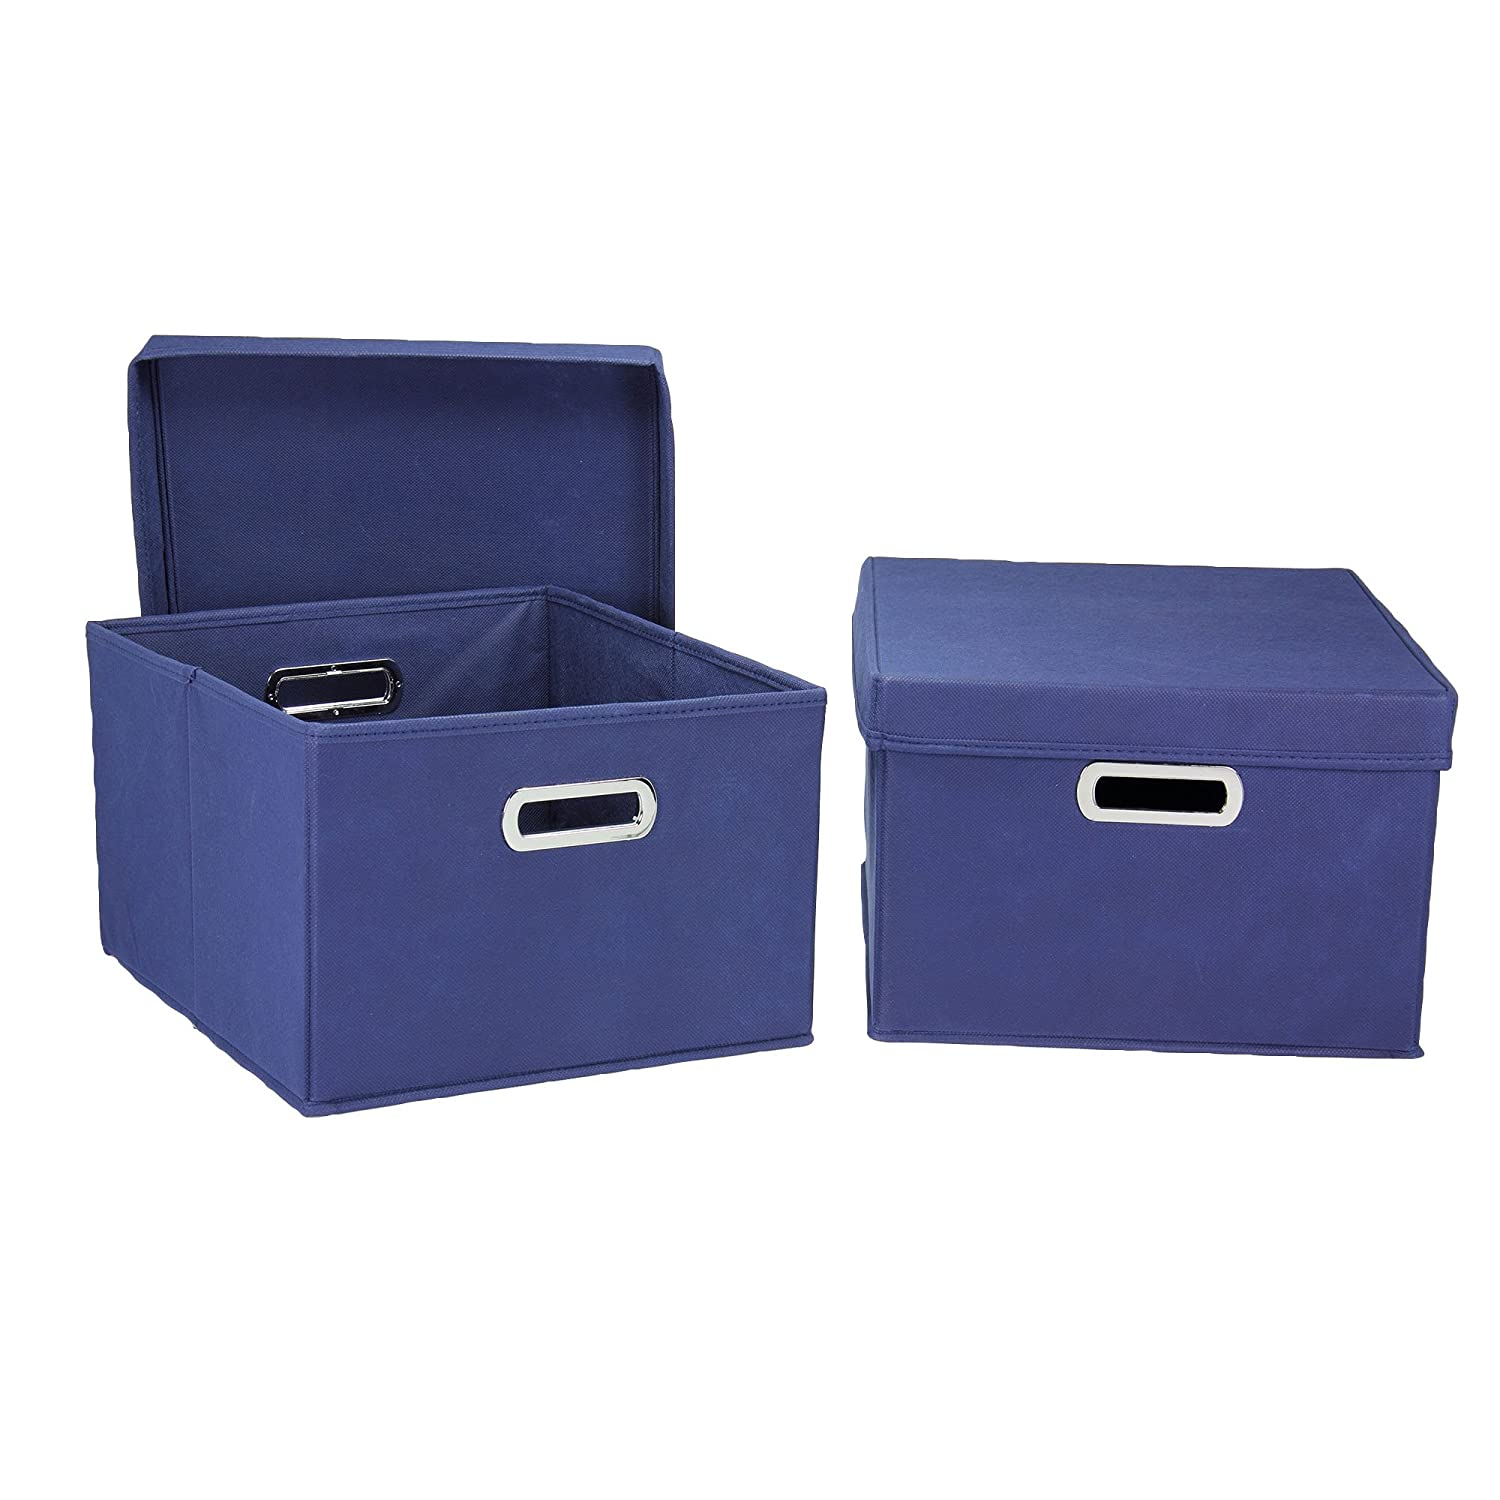 blue fabric storage boxes